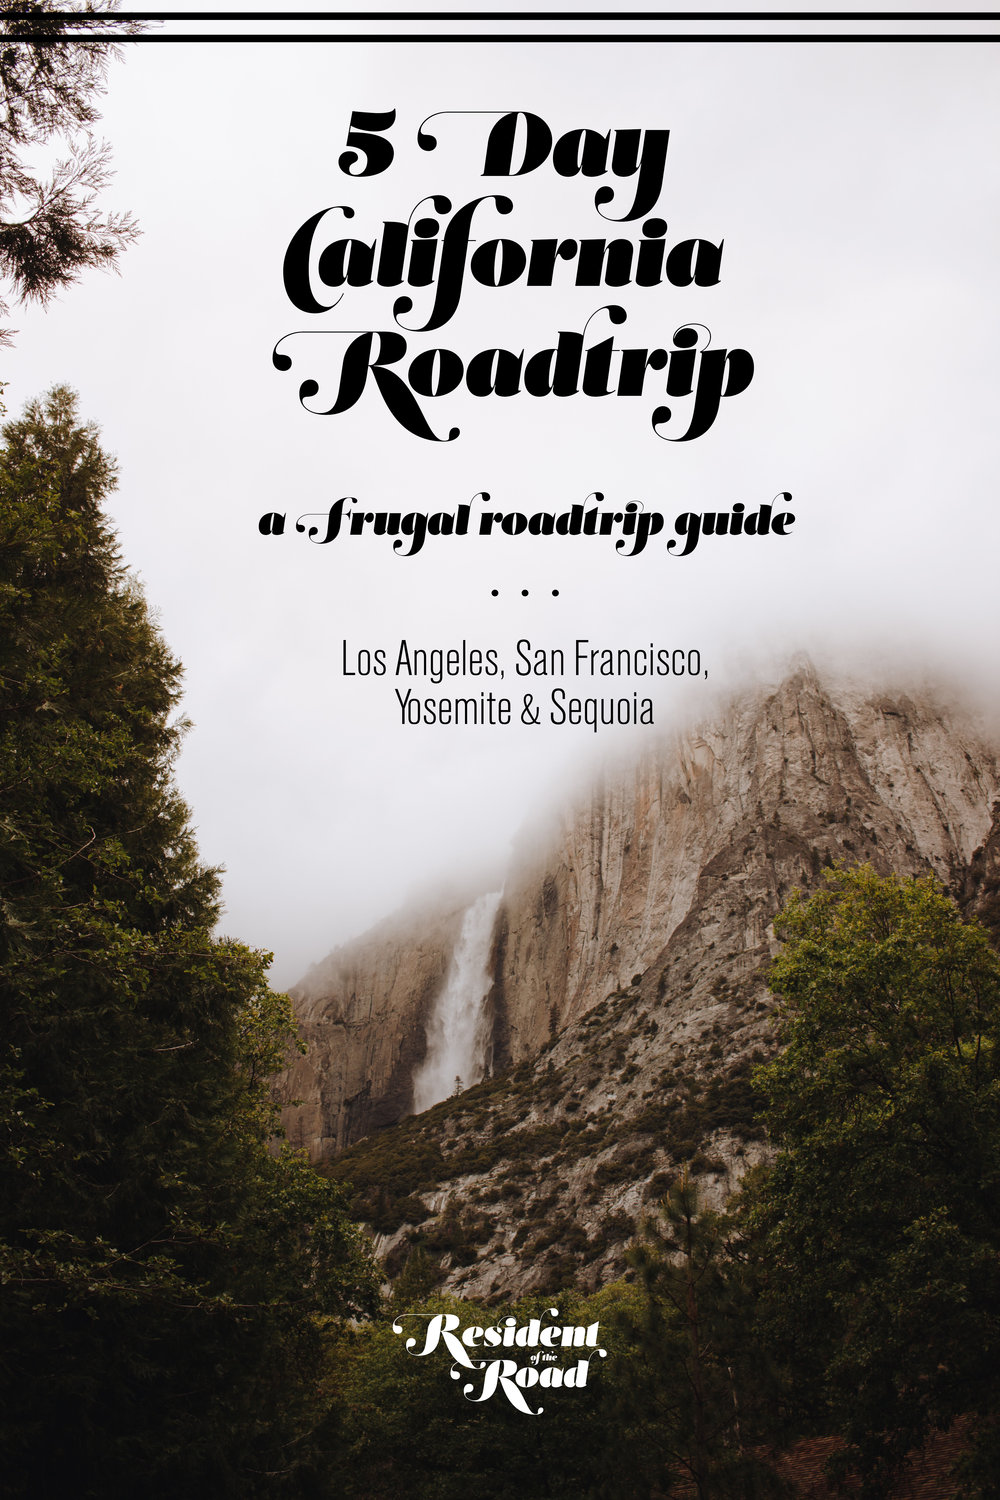 Your ultimate 5 day California roadtrip to LA, San Francisco, Yosemite and Sequoia || @ResidentoftheRoad